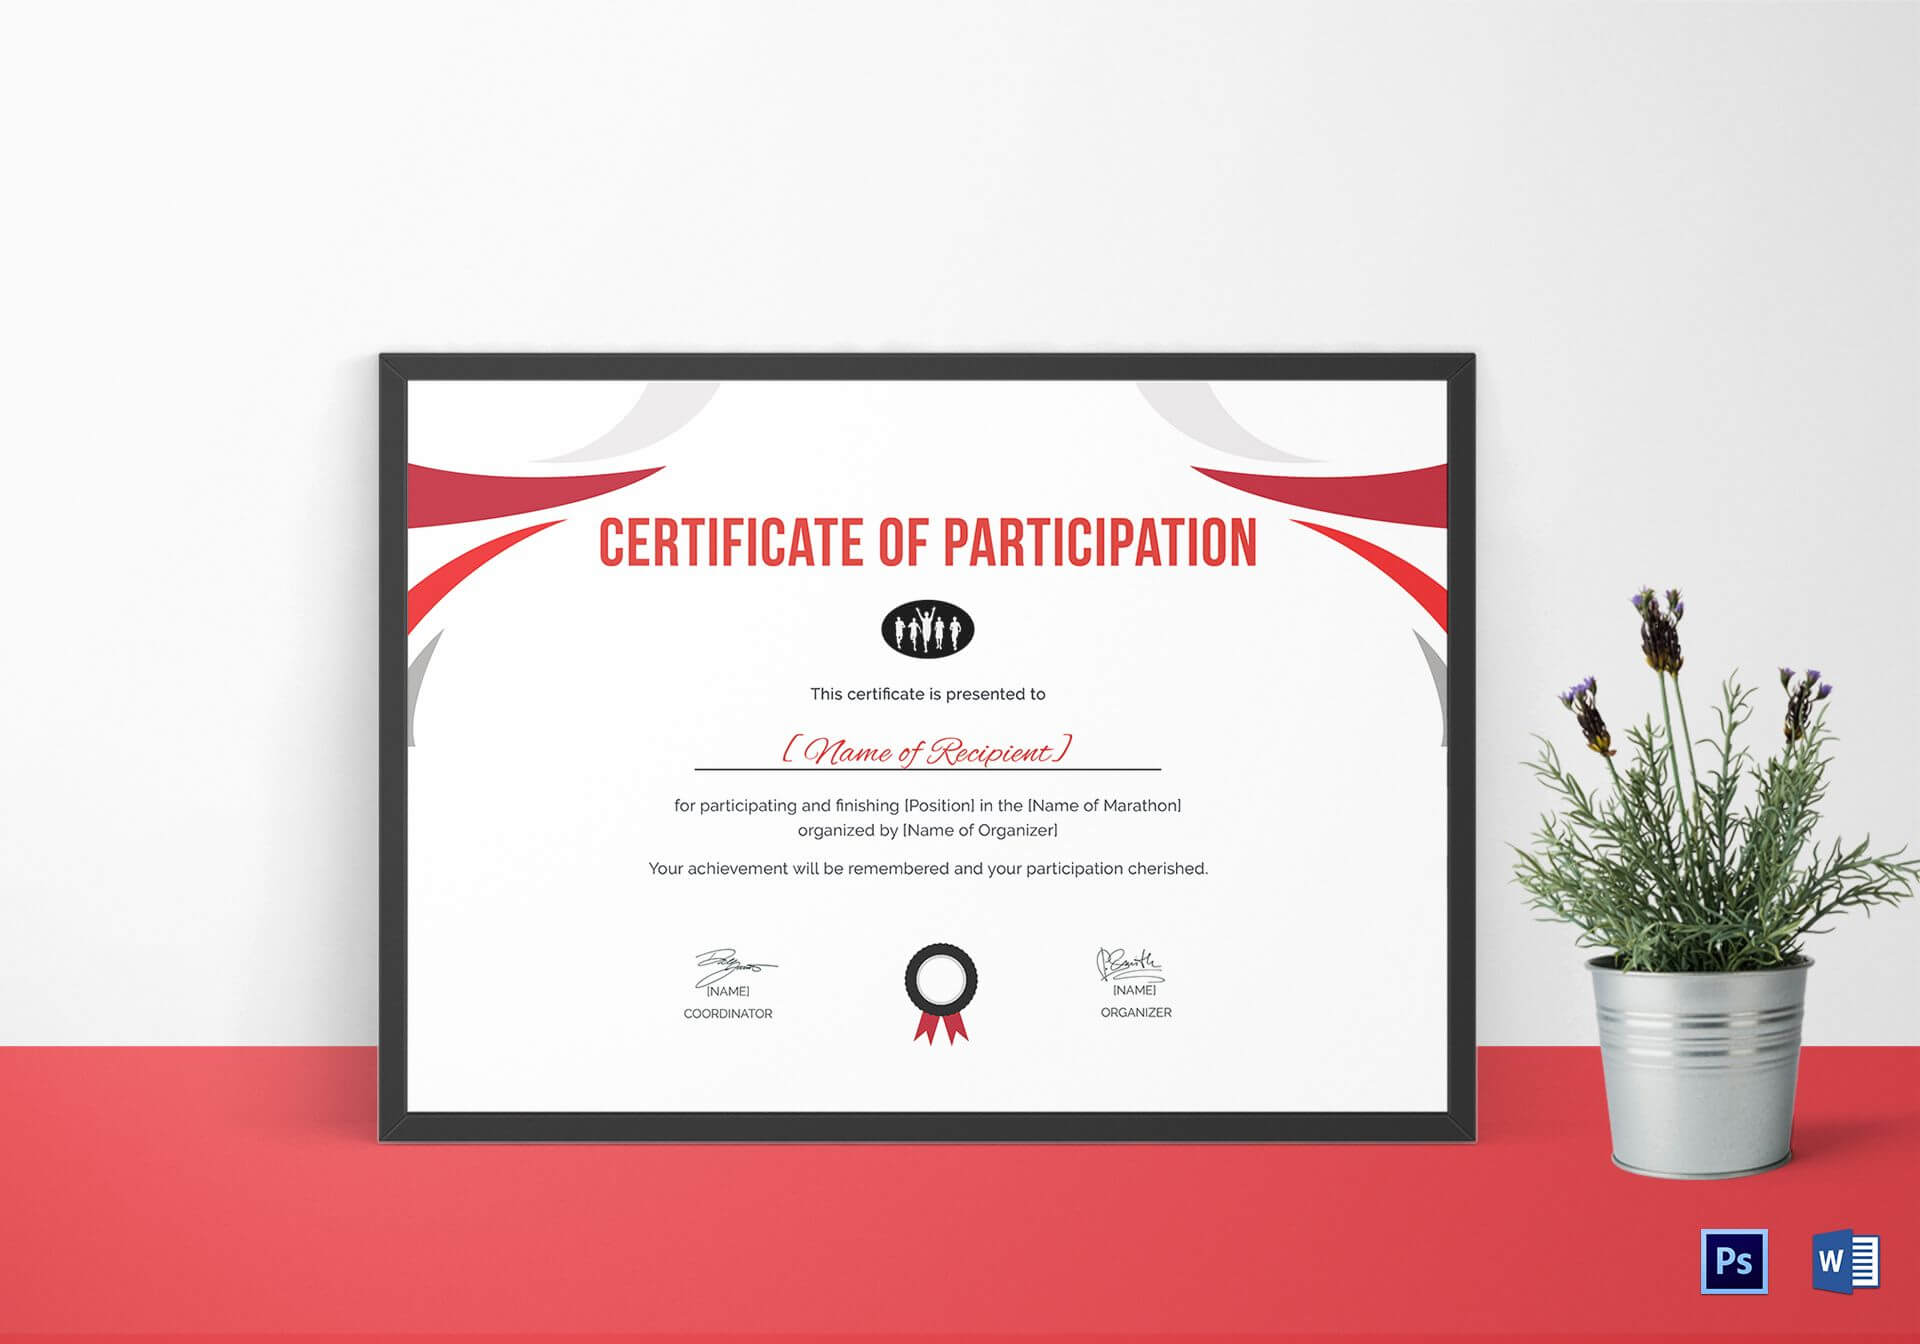 Participation Certificate For Running Template Within Running Certificates Templates Free